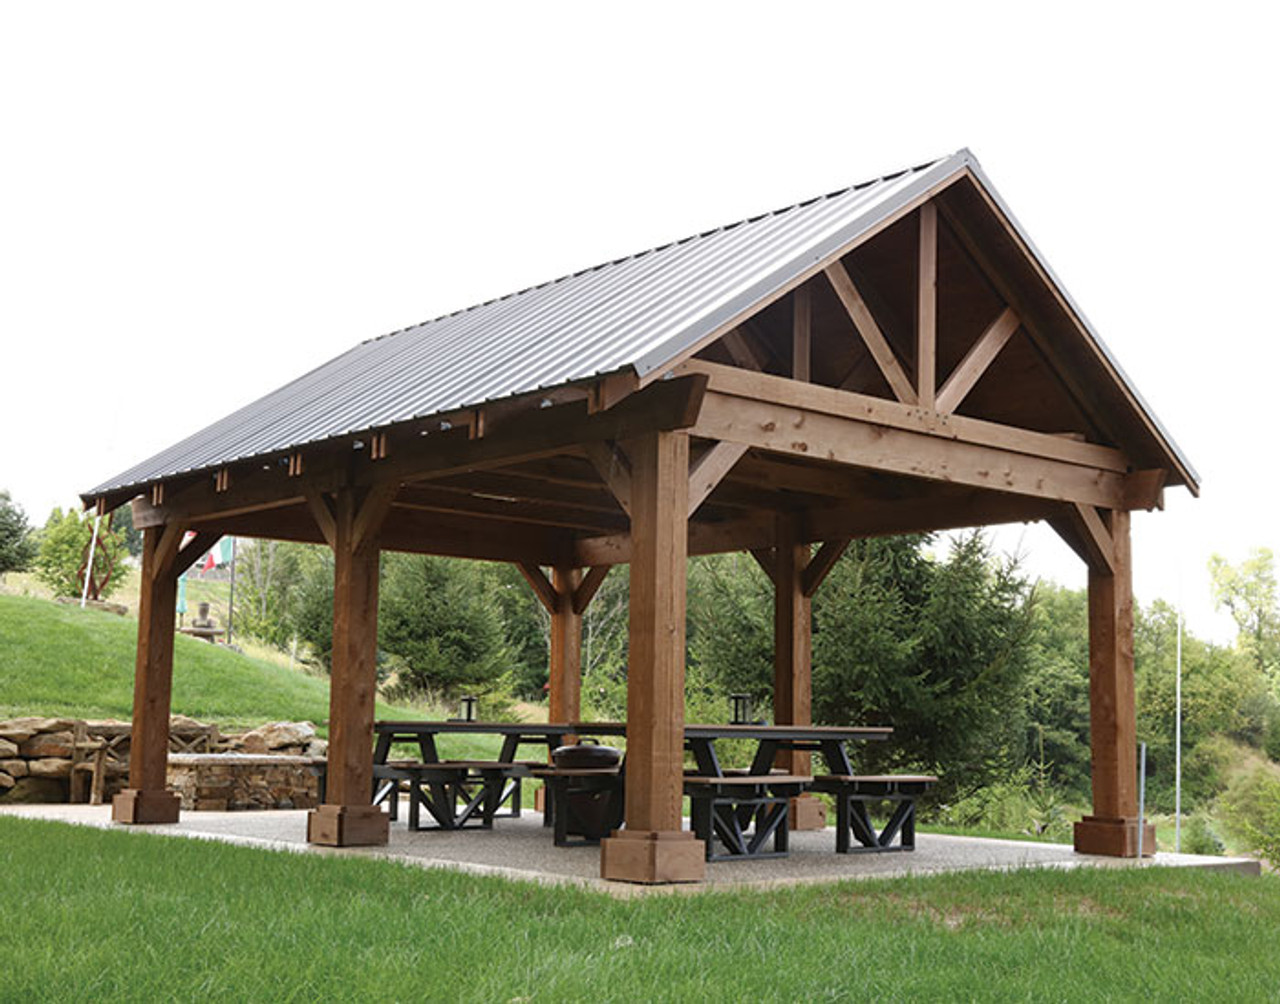 Cool Breckenridge Wood Pavilion Kauffman Lawn Furniture Download Free Architecture Designs Embacsunscenecom